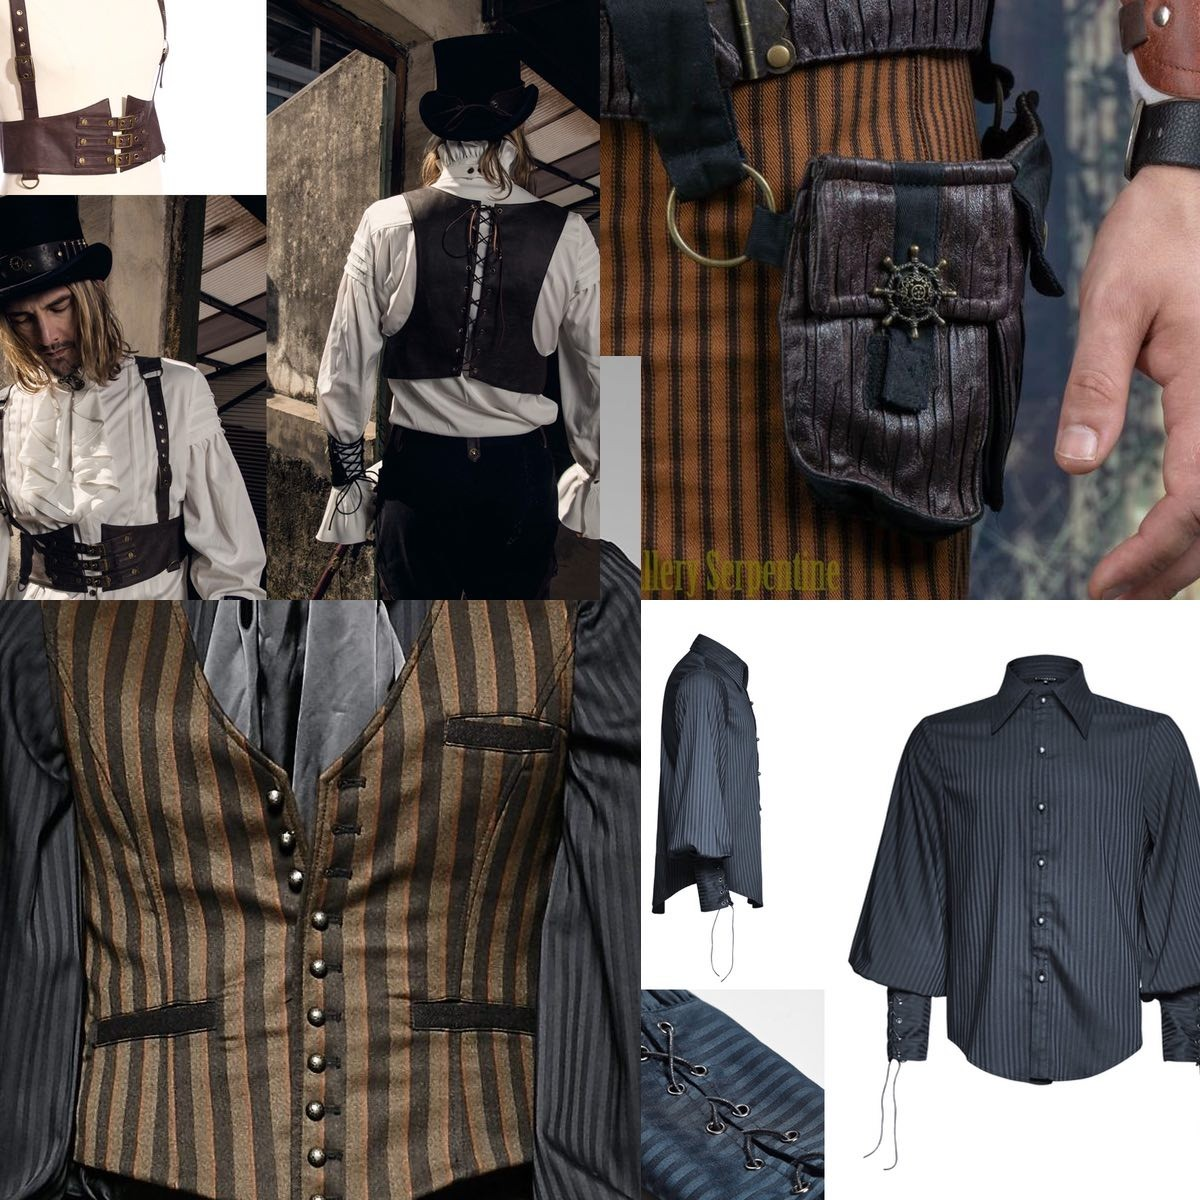 steampunk victorian and a bit of modern style pirate shirt action for guys looking for a bargain